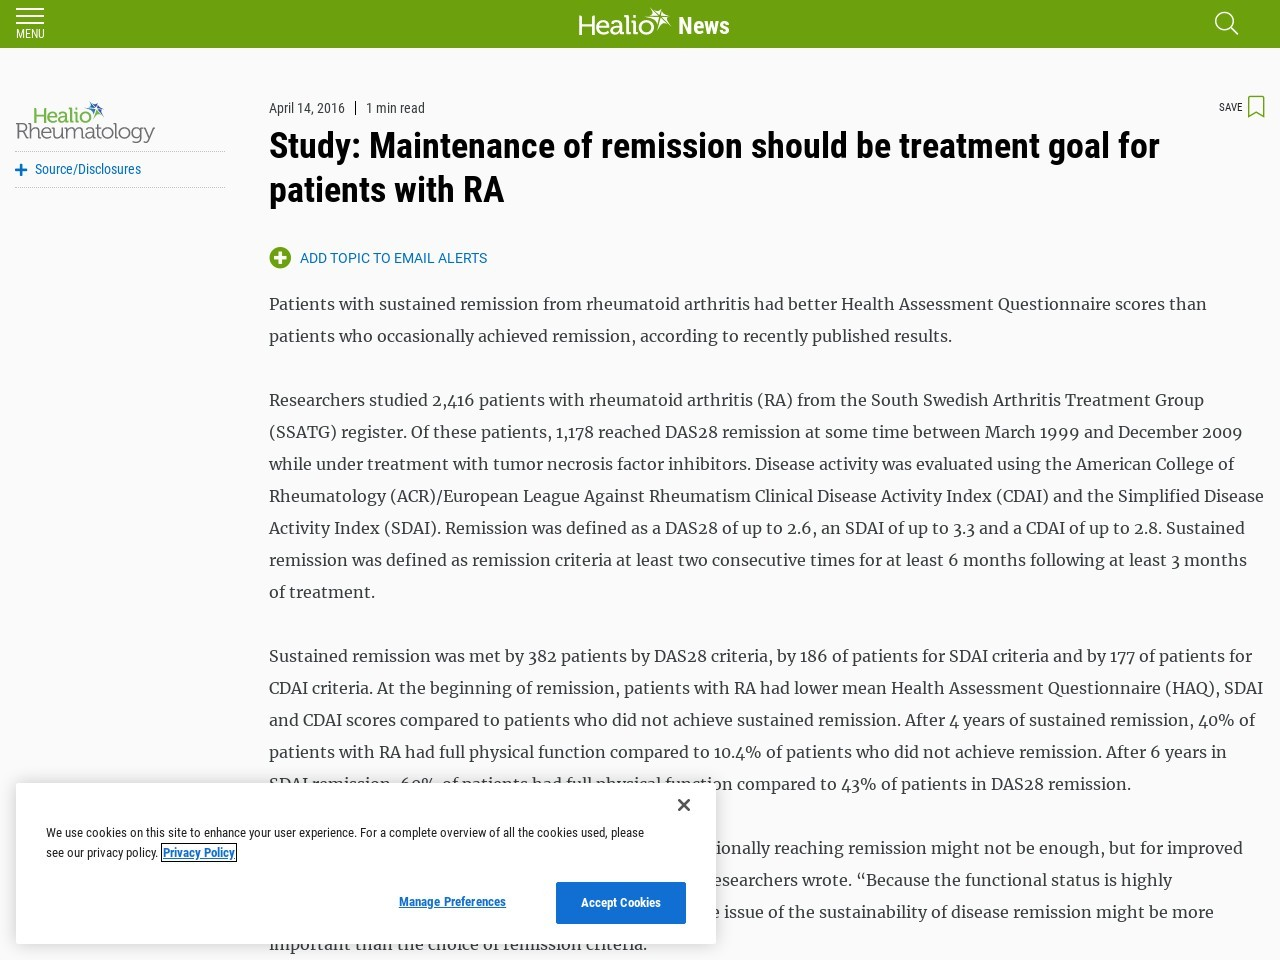 Study: Maintenance of remission should be treatment goal for patients with RA